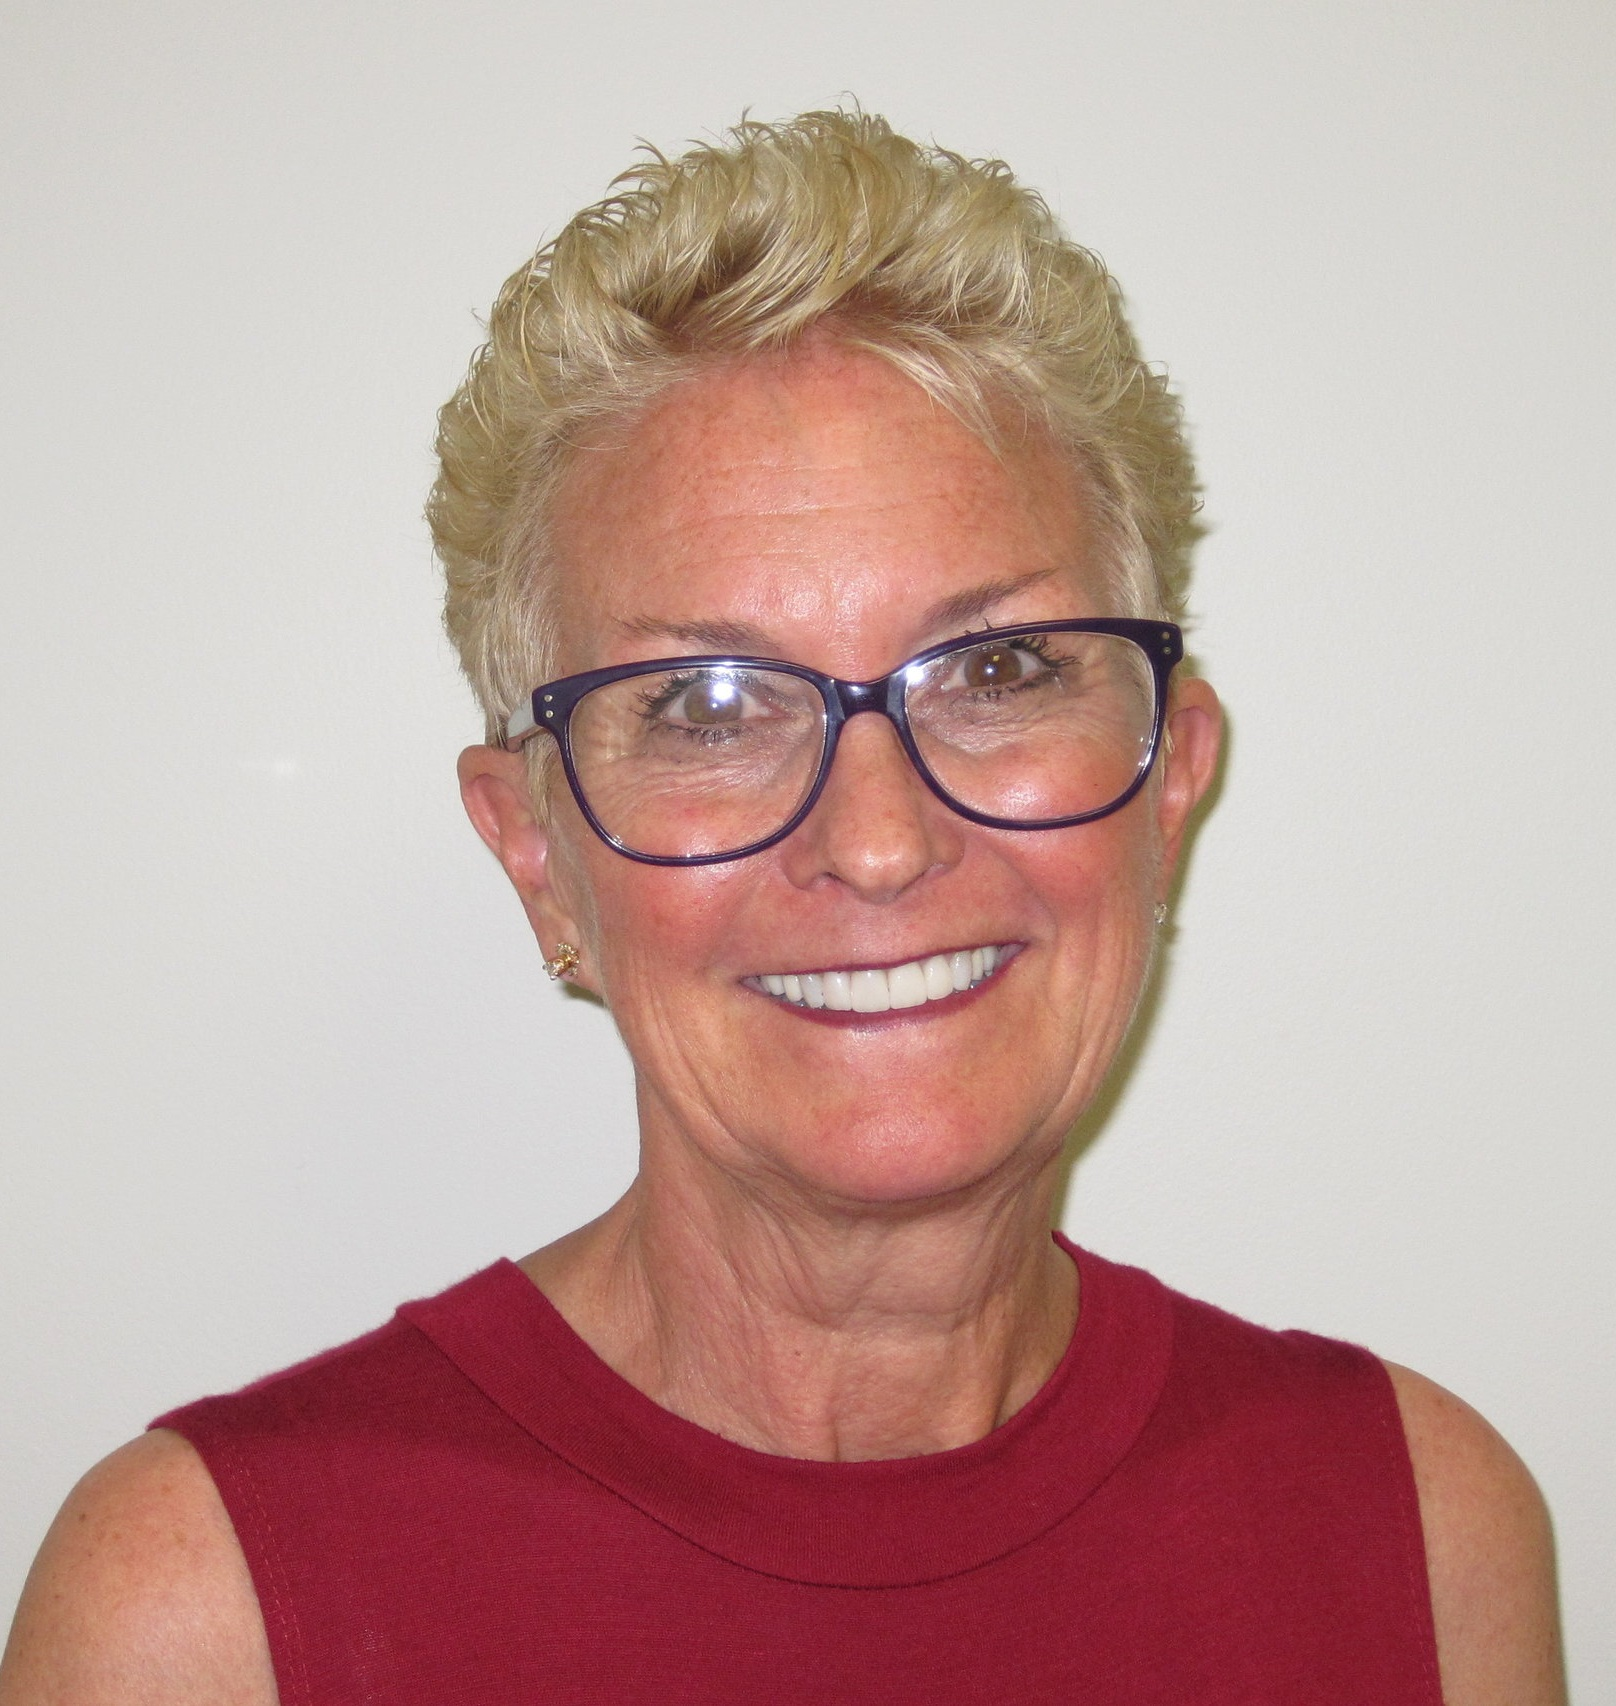 Gaye James - MA - VP-CQI and Training , joined Neighbor To Family in 2009 and has most recently served as Director- Office of Quality Improvement. James earned a Master of Arts from Wright State University and served in a number of private sector and academic positions before coming to the organization.